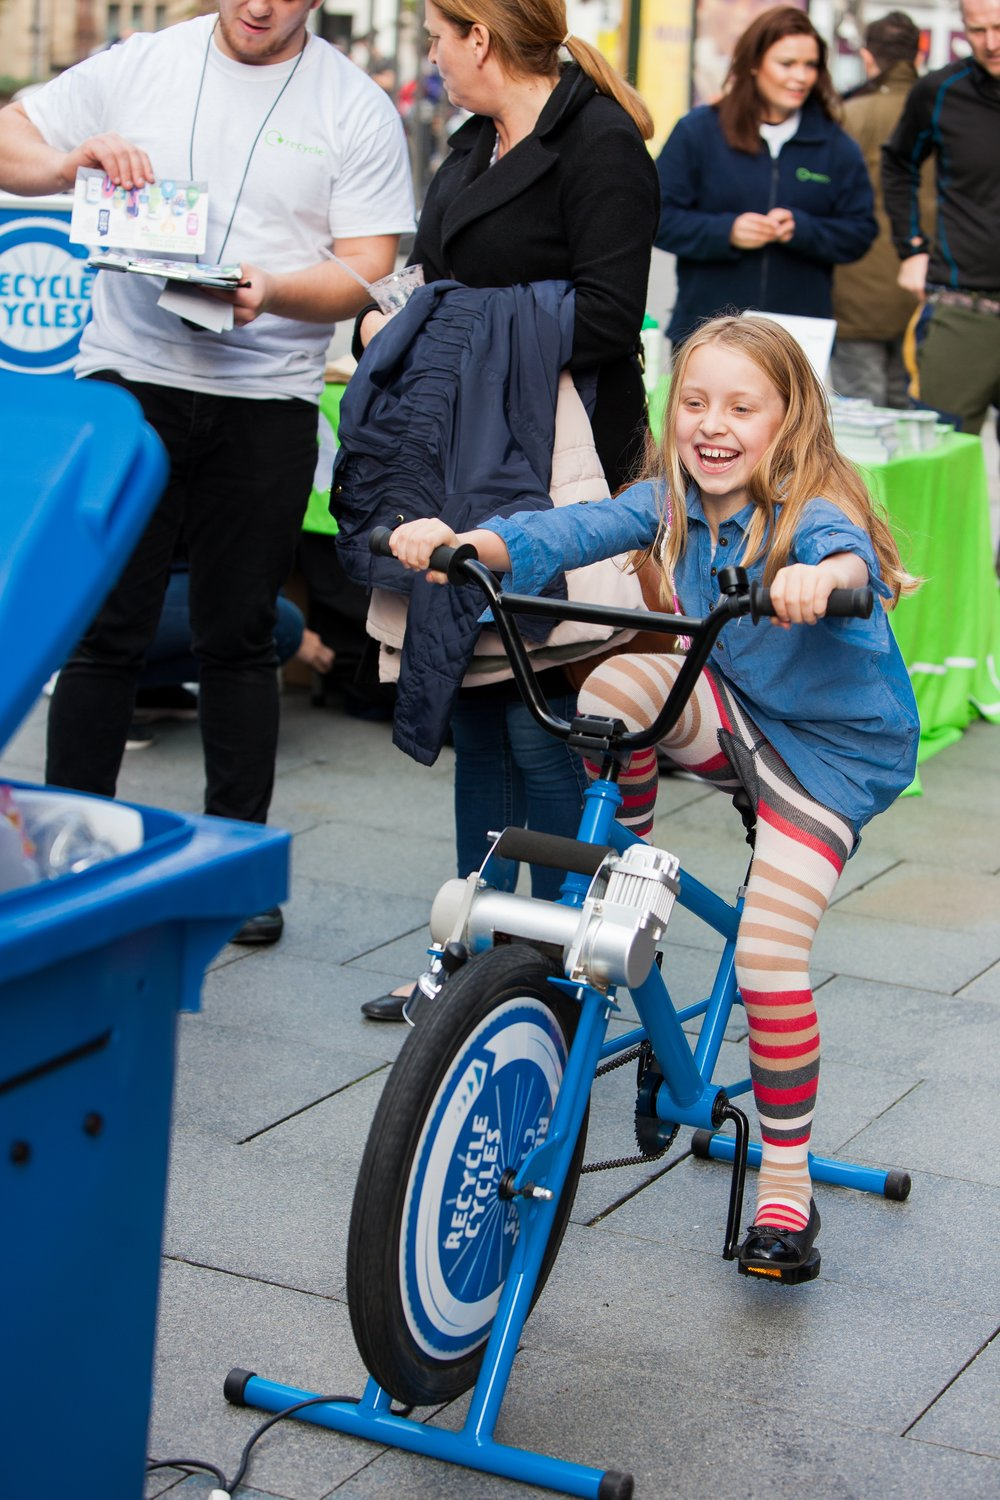 leeds_commercial_events_photographer_james_arnold_jarnold_Recycle_Now_Sheffield_0030.jpg